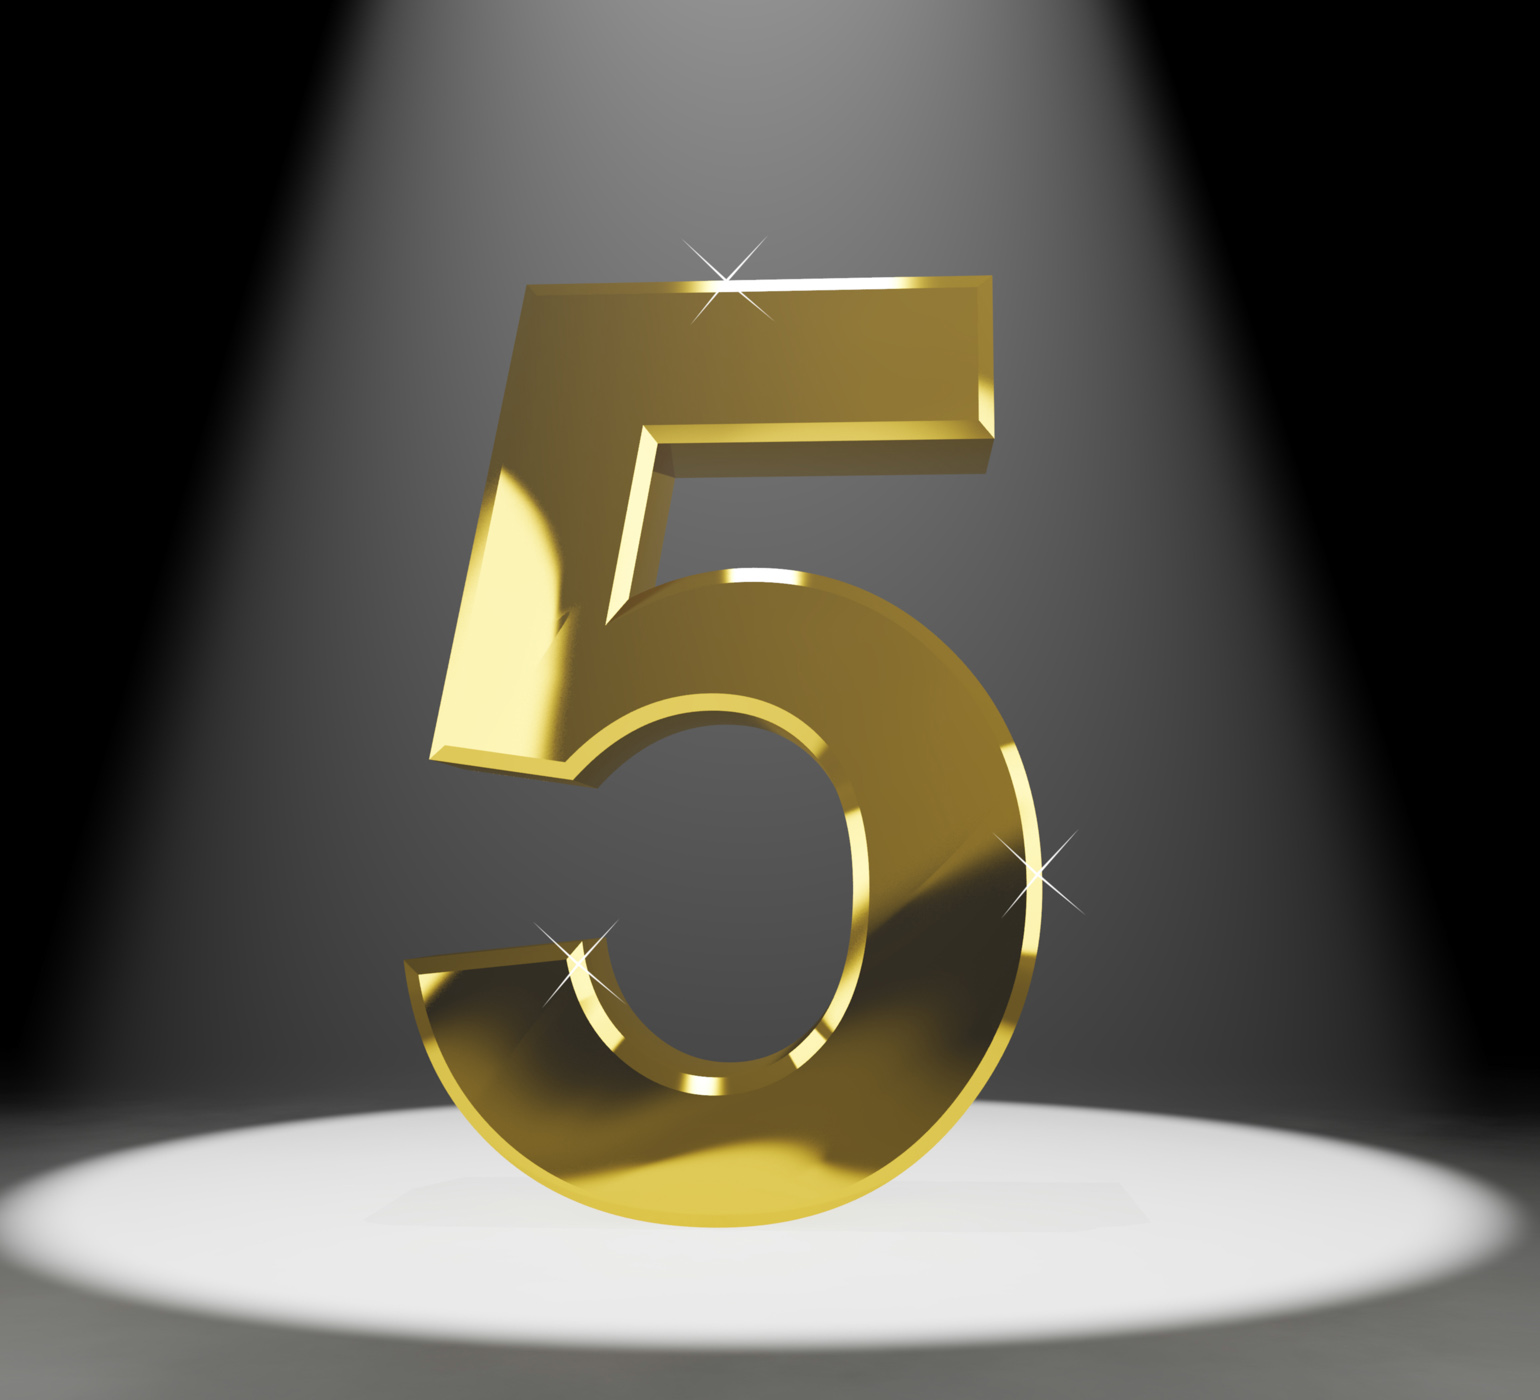 Gold Five Or 5 3d Number Closeup Representing Anniversary Or Birthday, 3d, Golden, Stage, Spotlight, HQ Photo